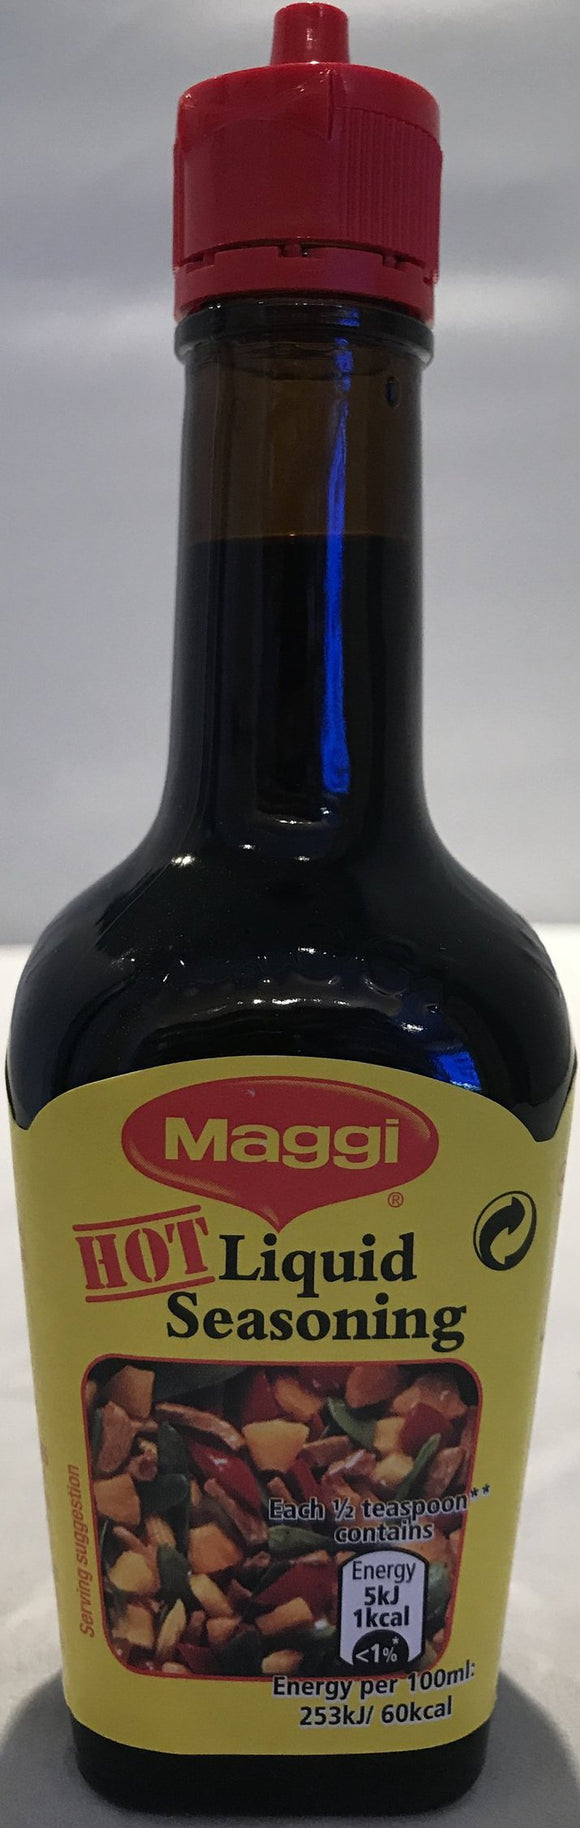 Maggi Liquid Seasoning Hot - 100ml - ExoticEstore